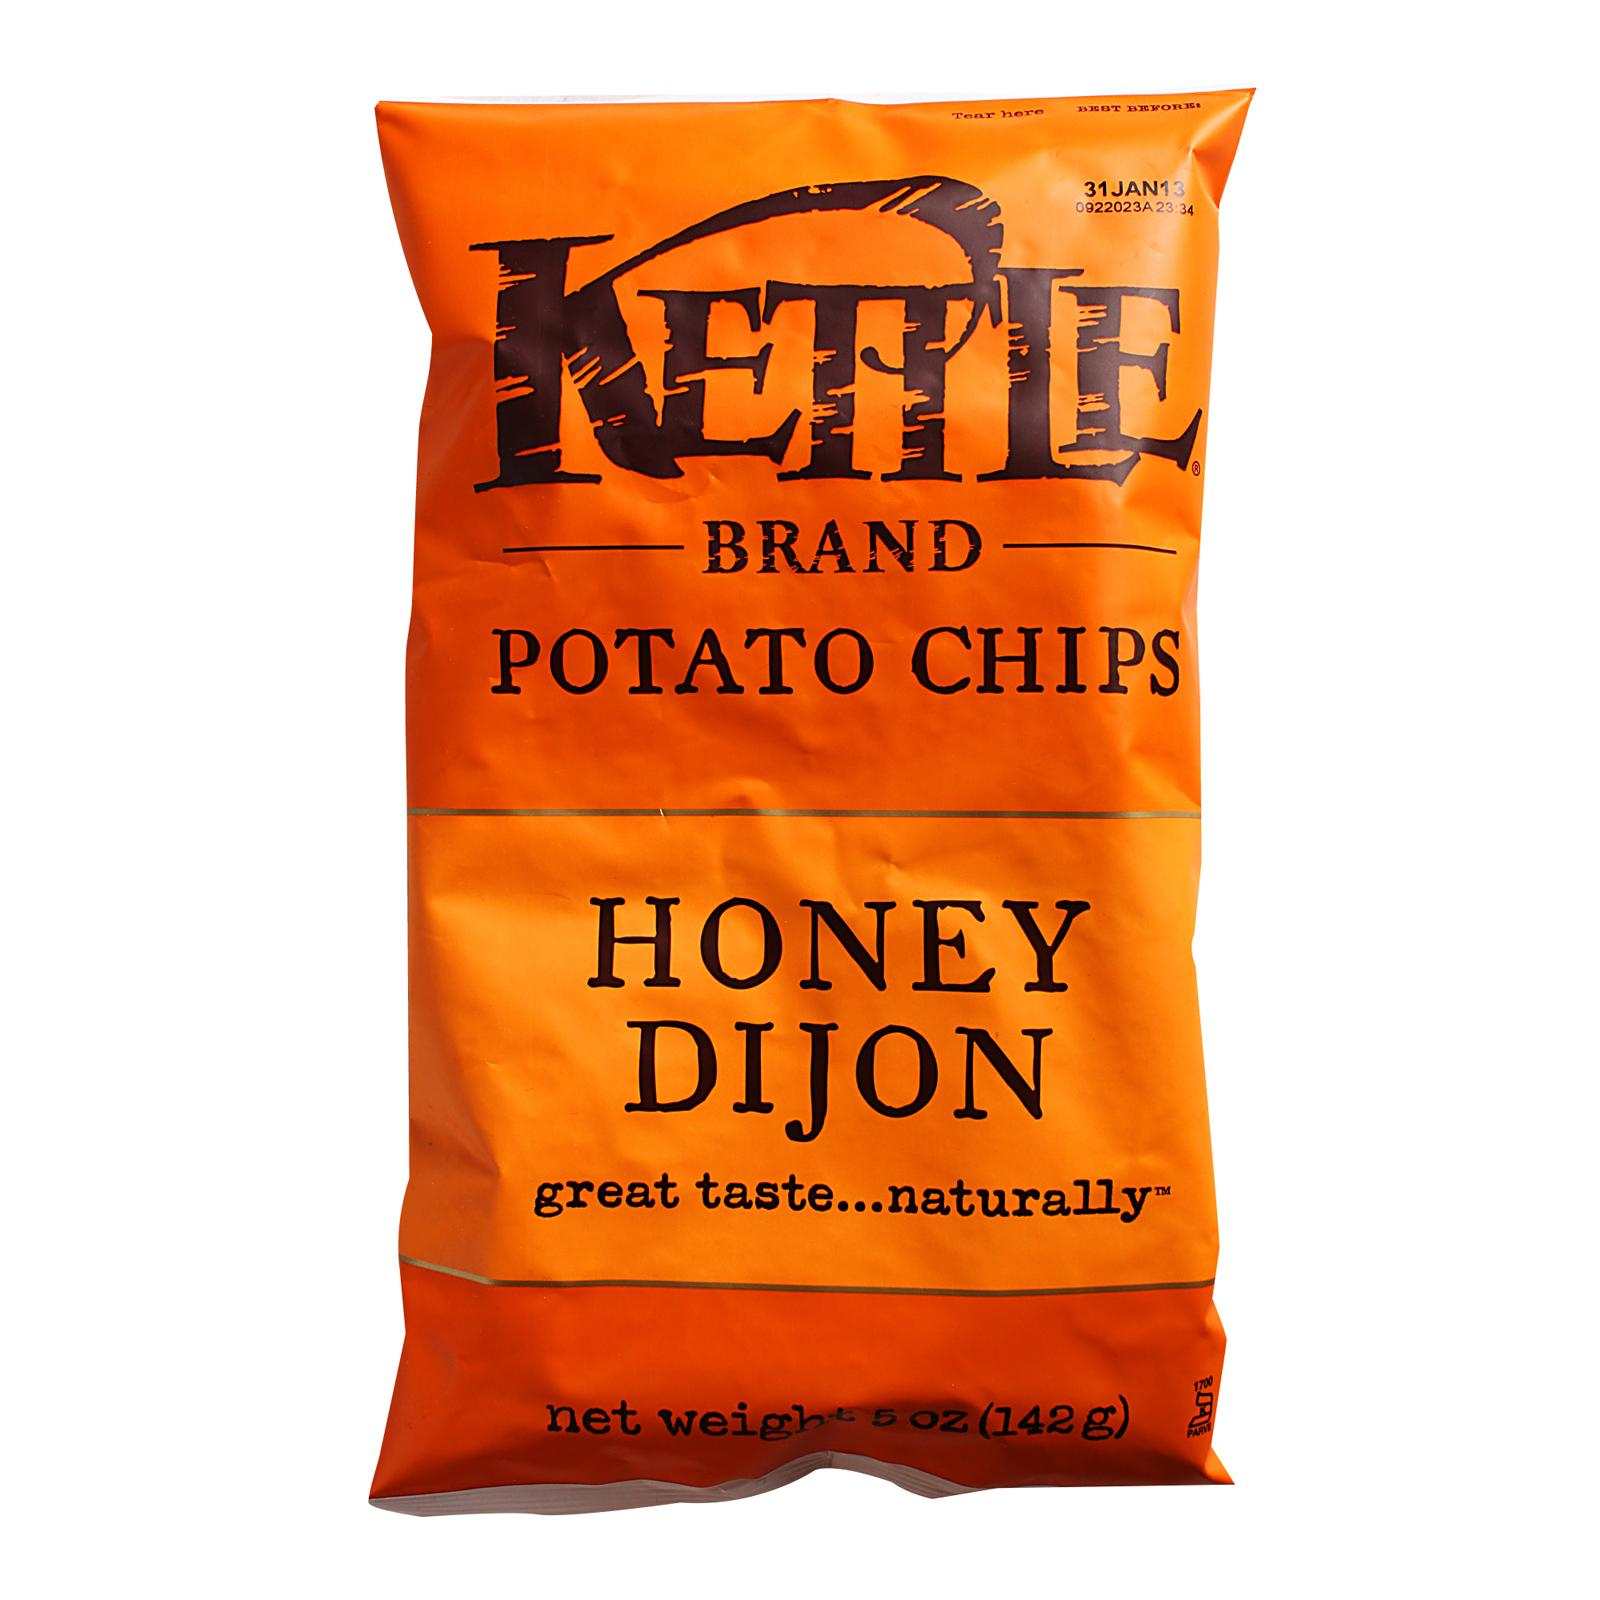 Kettle Honey Dijon Potato Chips By Redmart.